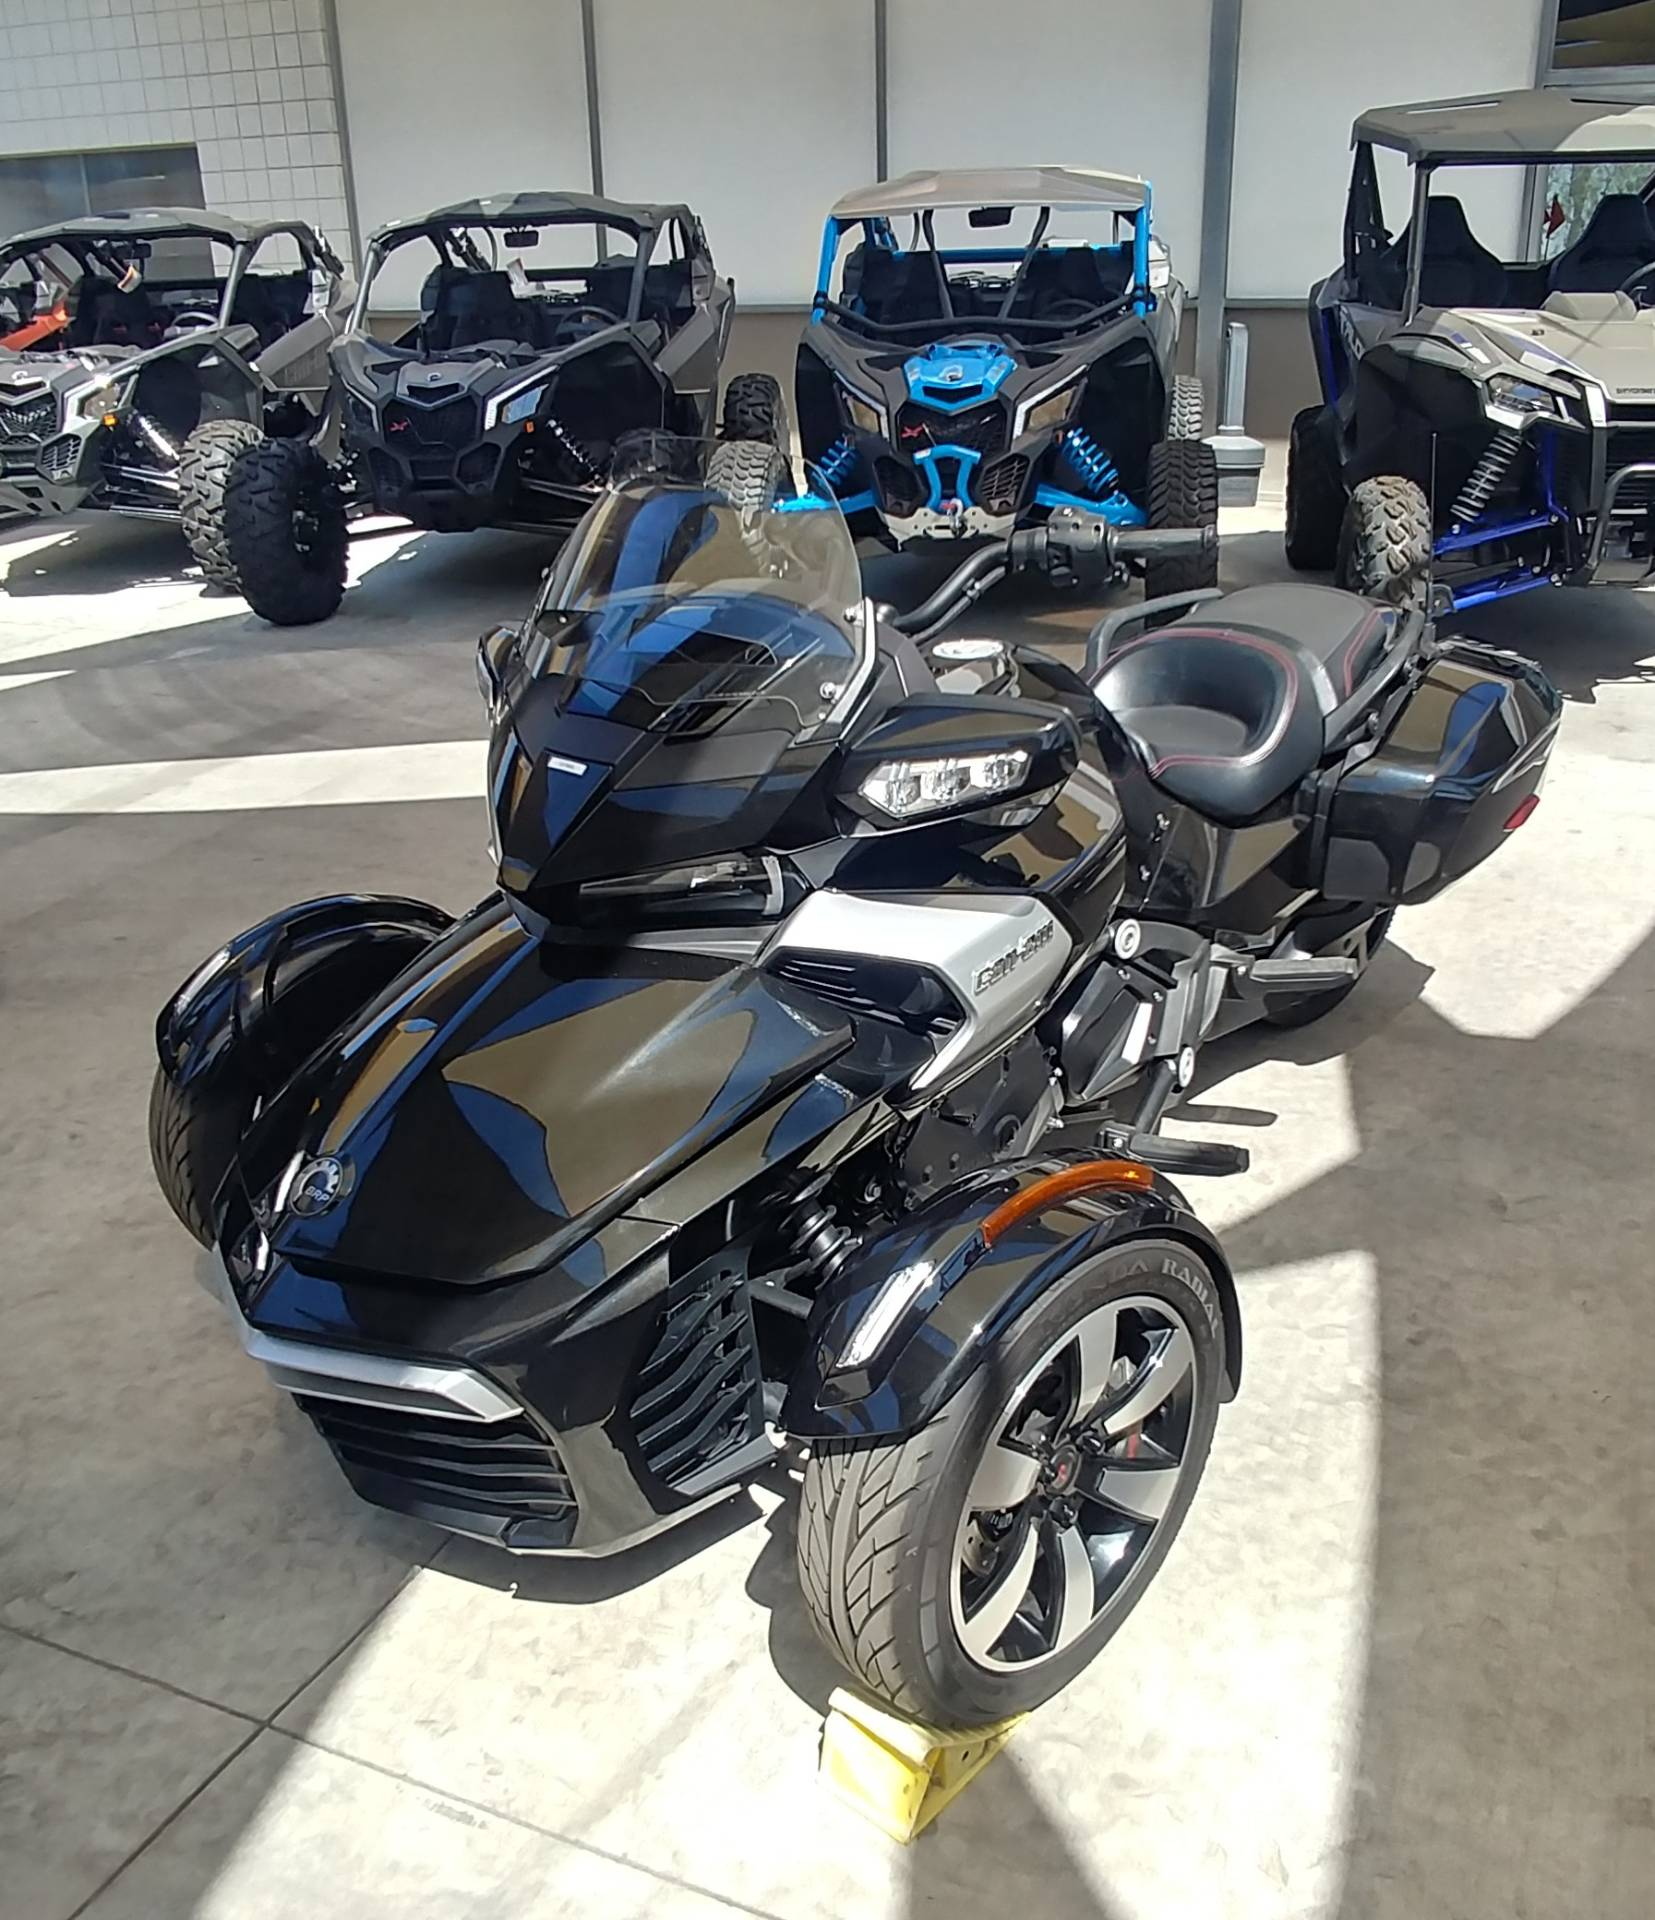 2016 Can-Am Spyder F3-T SE6 w/ Audio System in Ontario, California - Photo 5